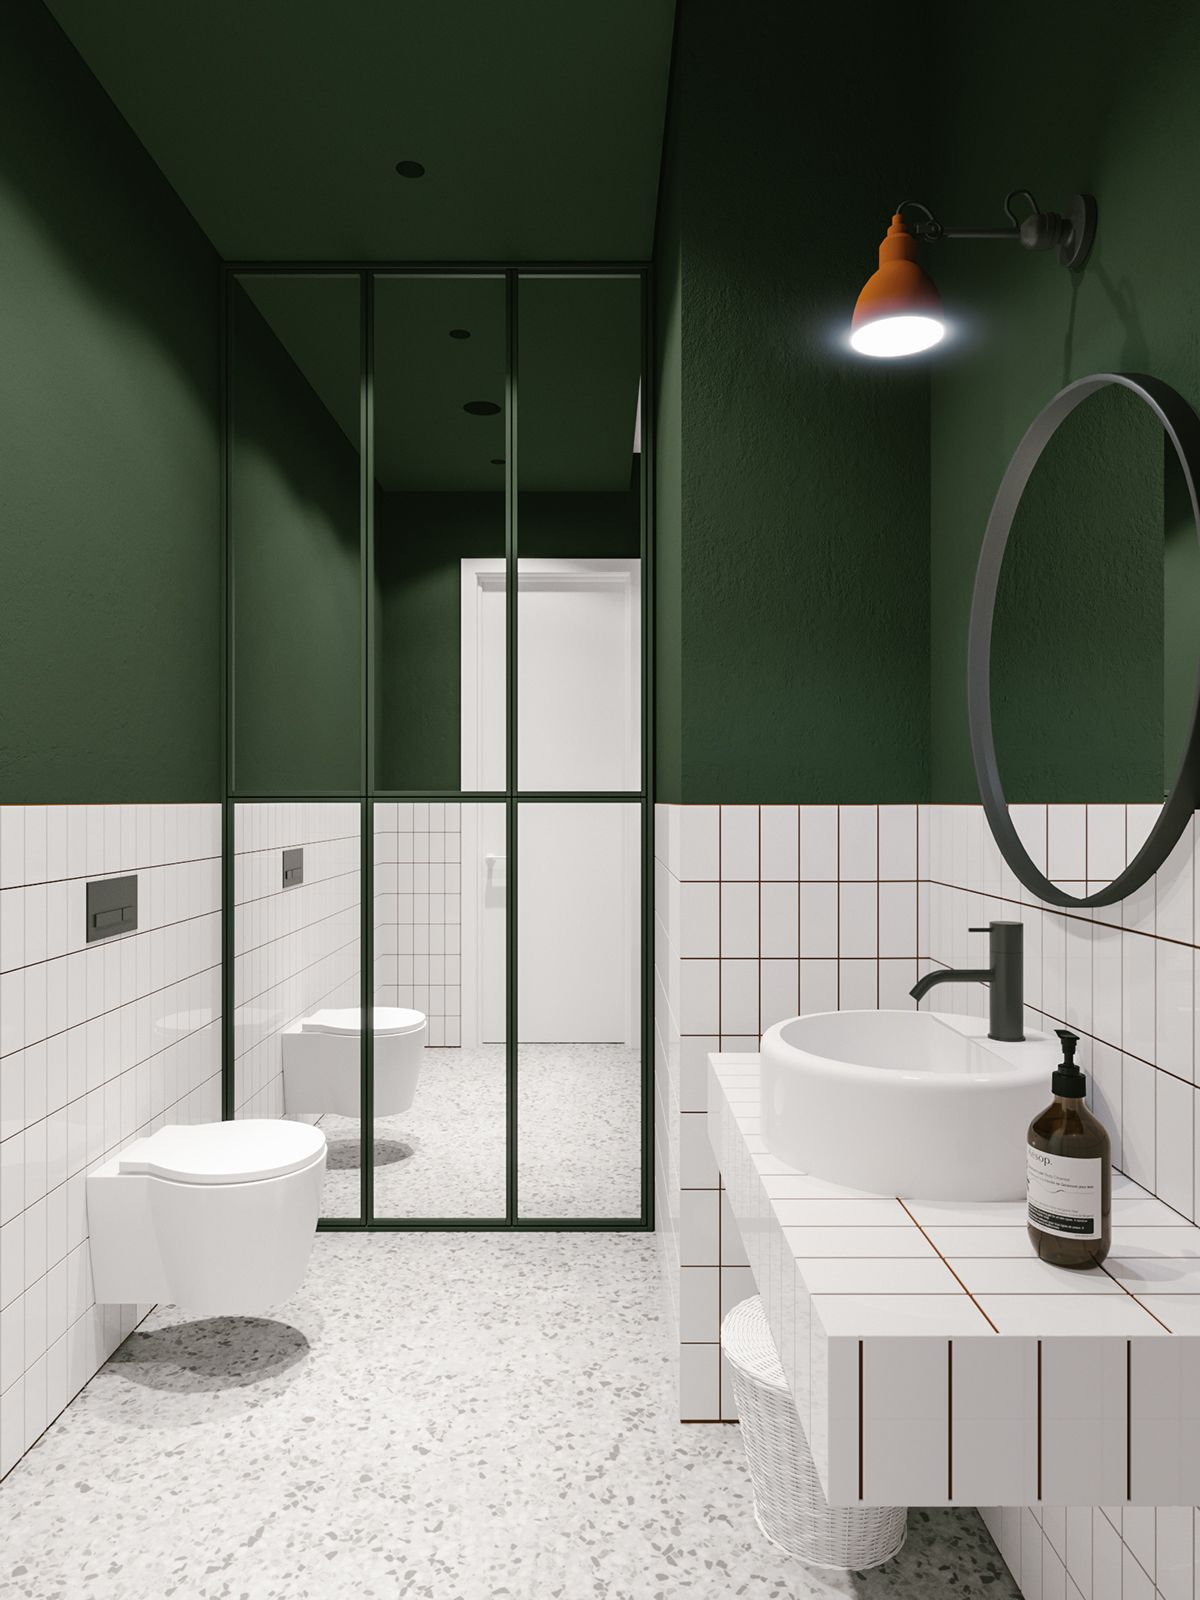 bb8a8f57030203.59c58a1a0e829.jpg (1200×1600) | bathroom | Pinterest ...